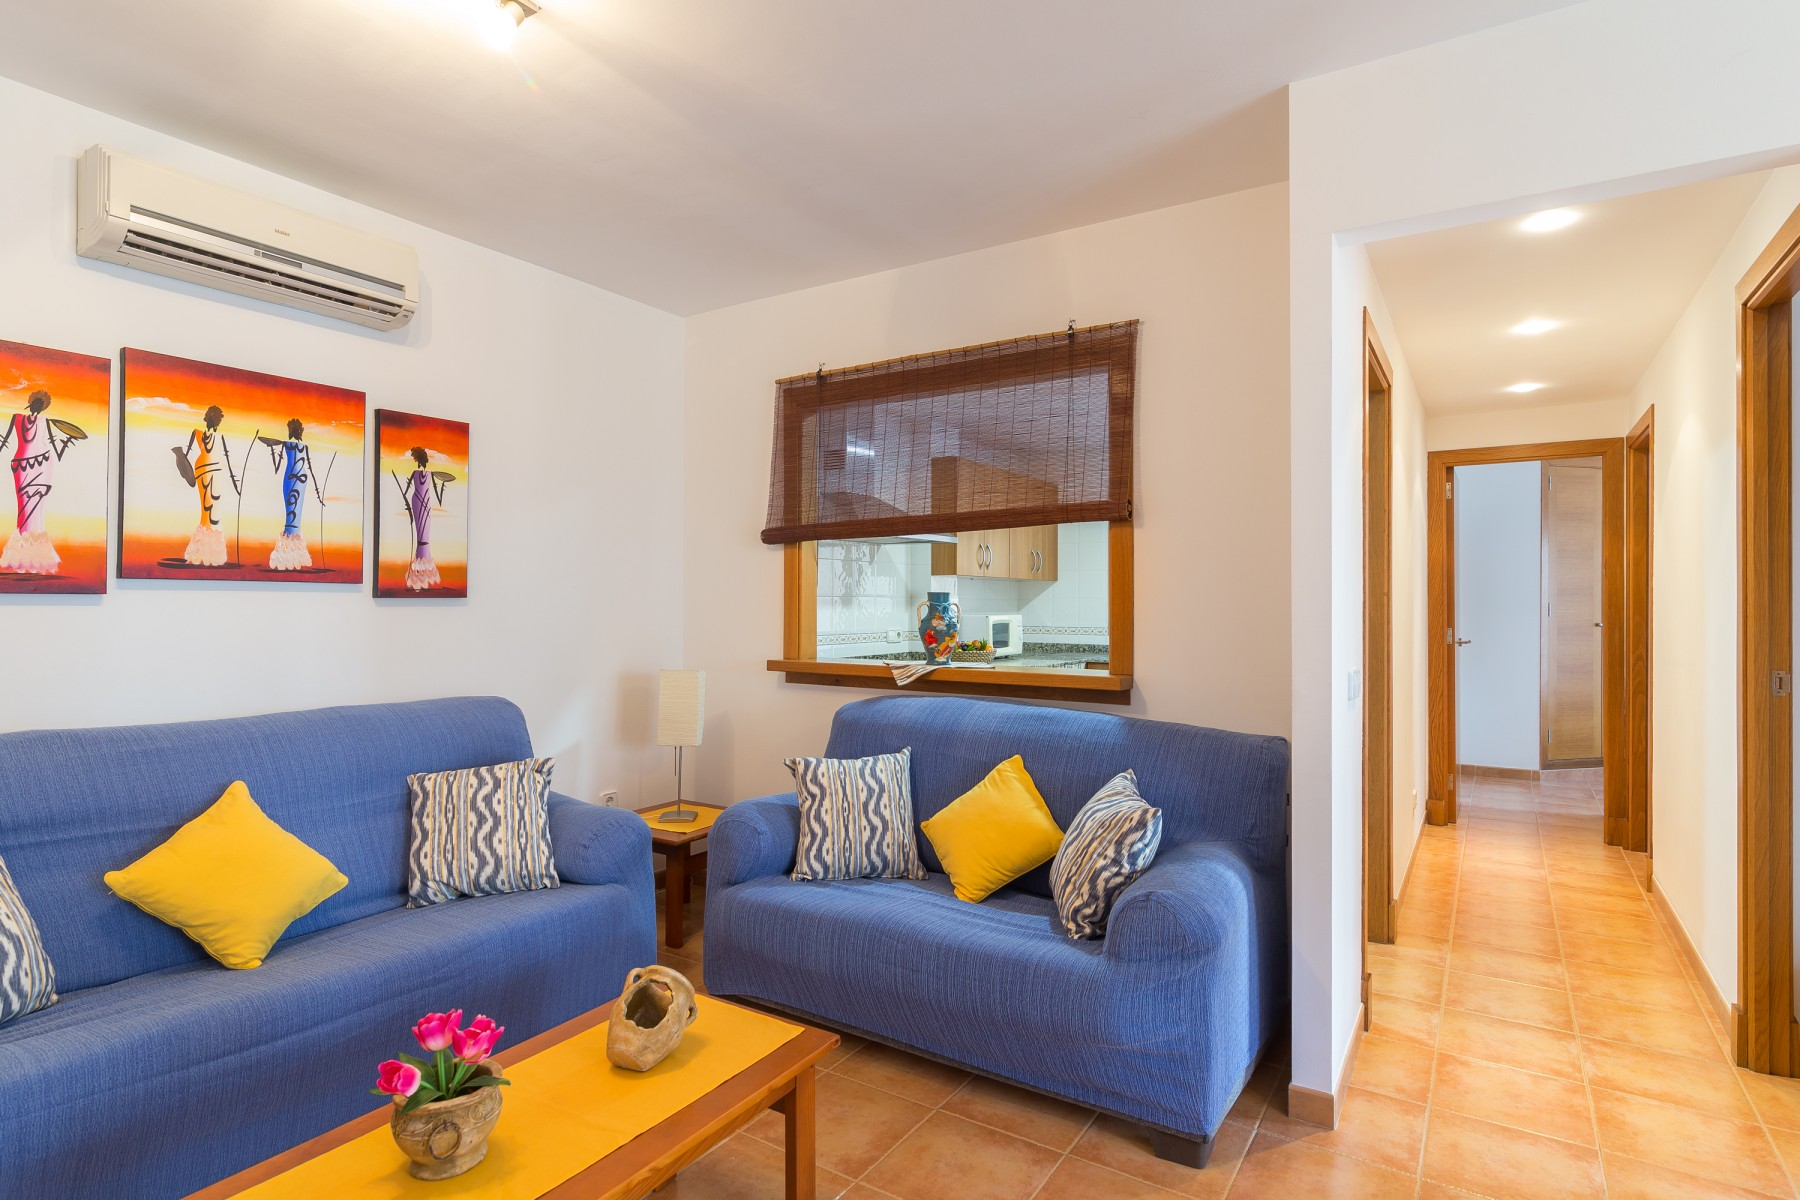 Katyna for 4 guests in Can Picafort, Spanien